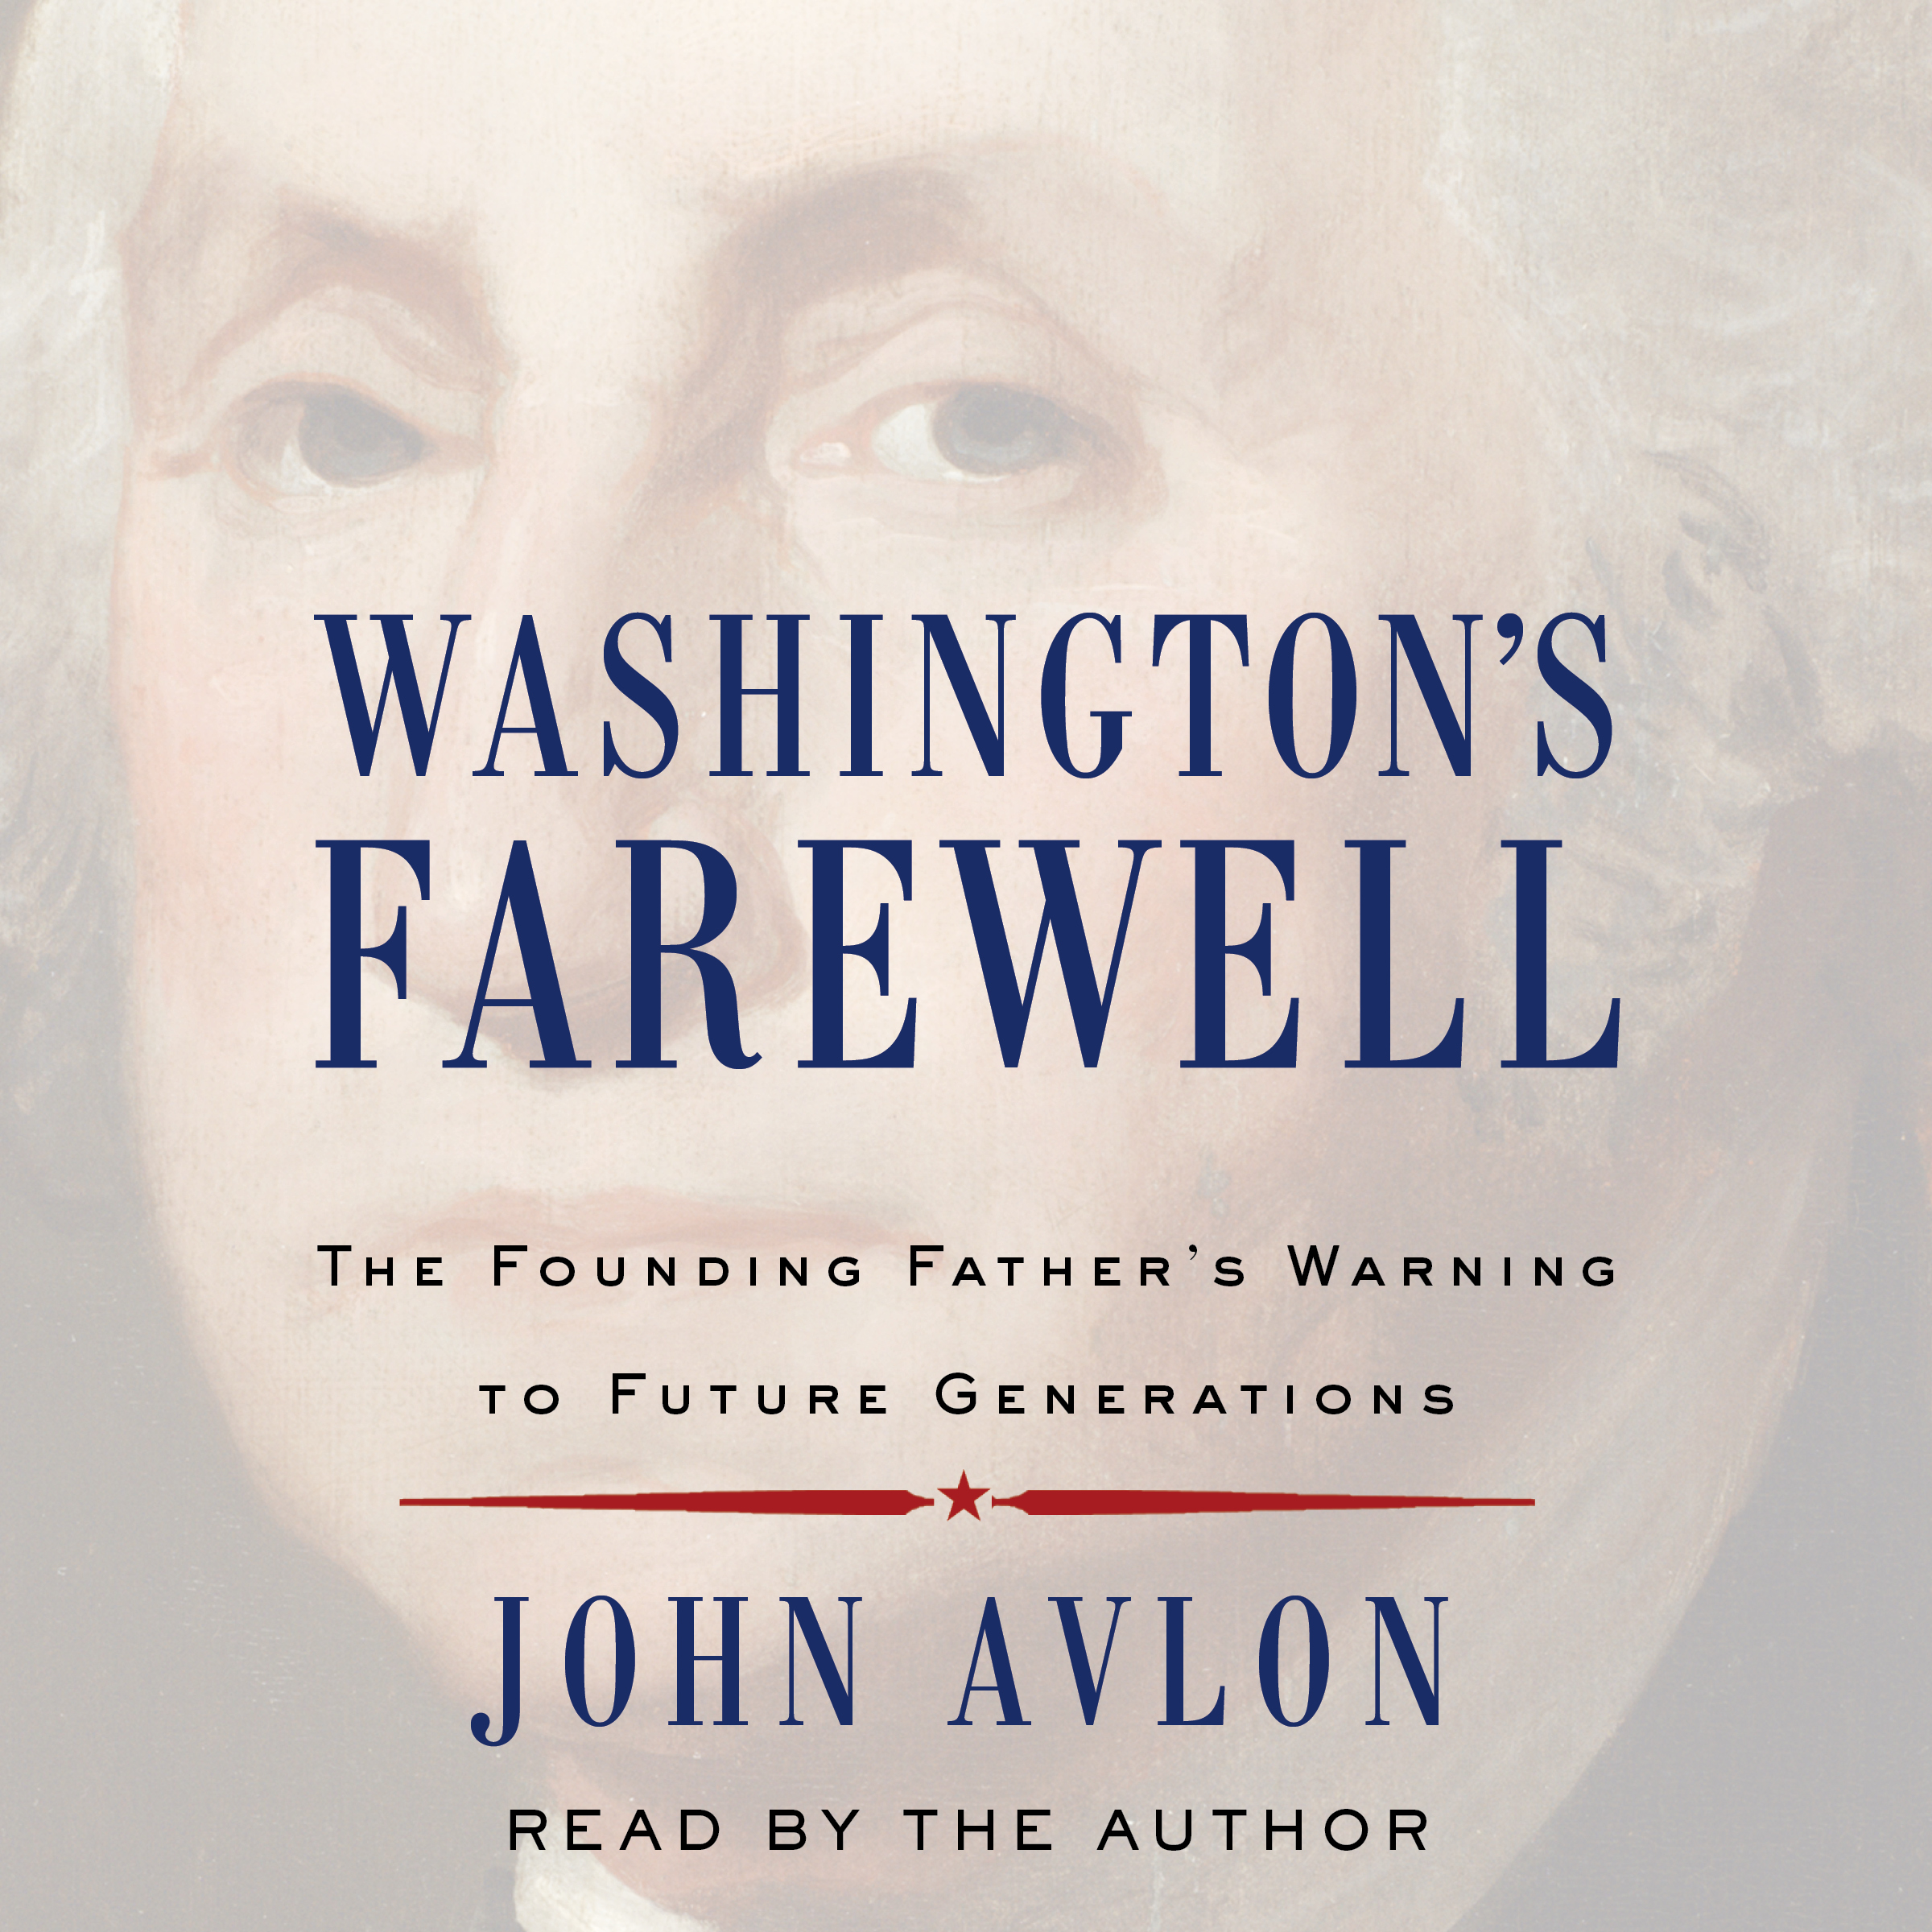 Washingtons farewell 9781508234449 hr